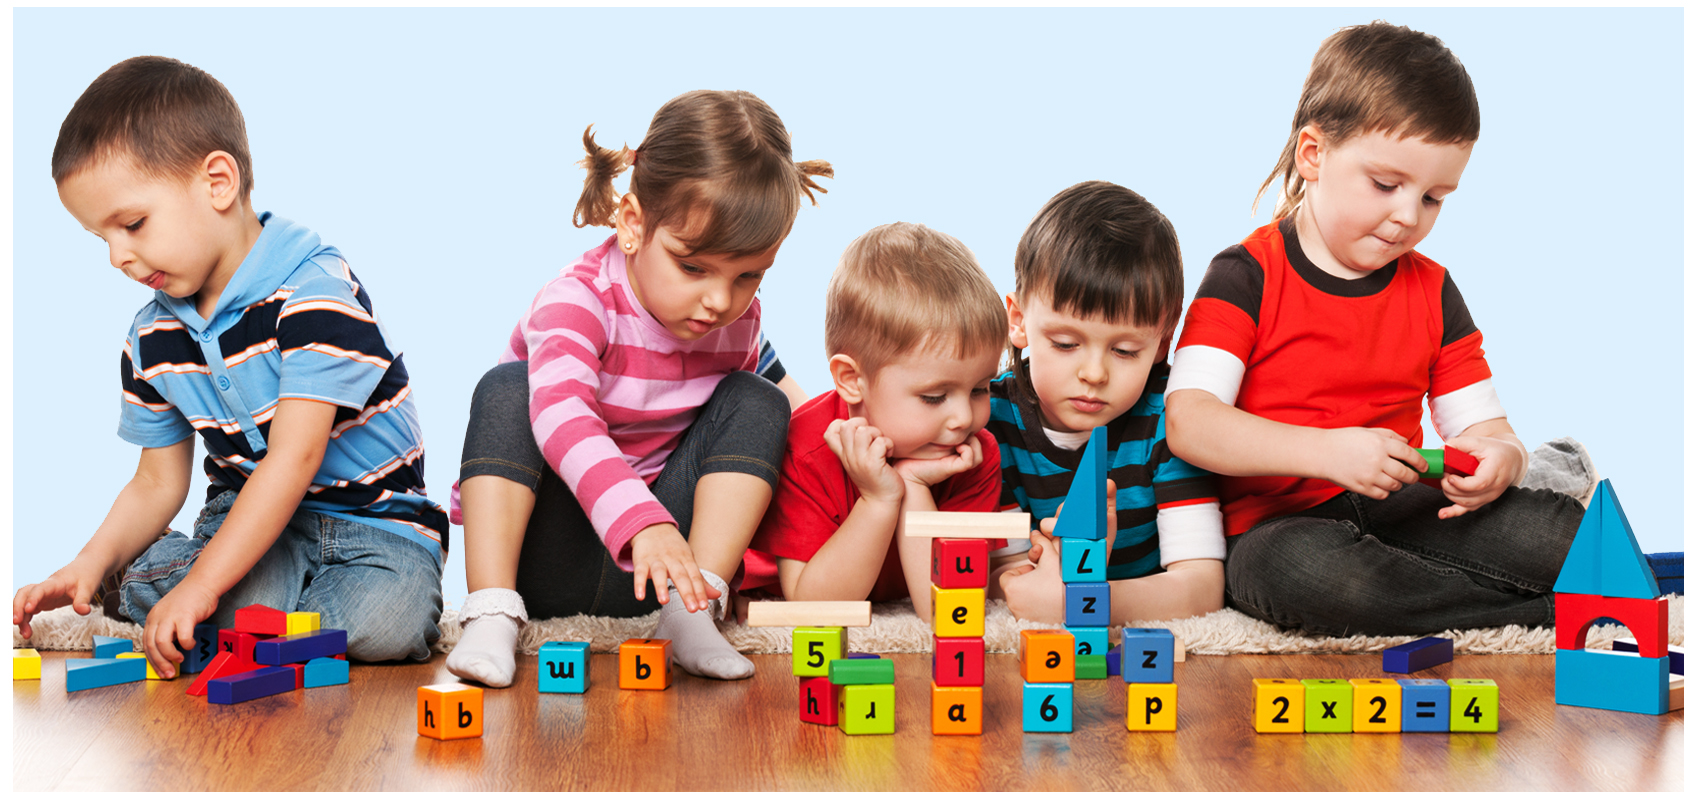 play and learning for the preschool child Some of the skills children learn in preschool include social skills, problem solving and fine motor skills children also learn numbers and counting, letters and literacy, and basic colors and shapes, explains parents magazine in preschool, children are taught important social skills, such as.